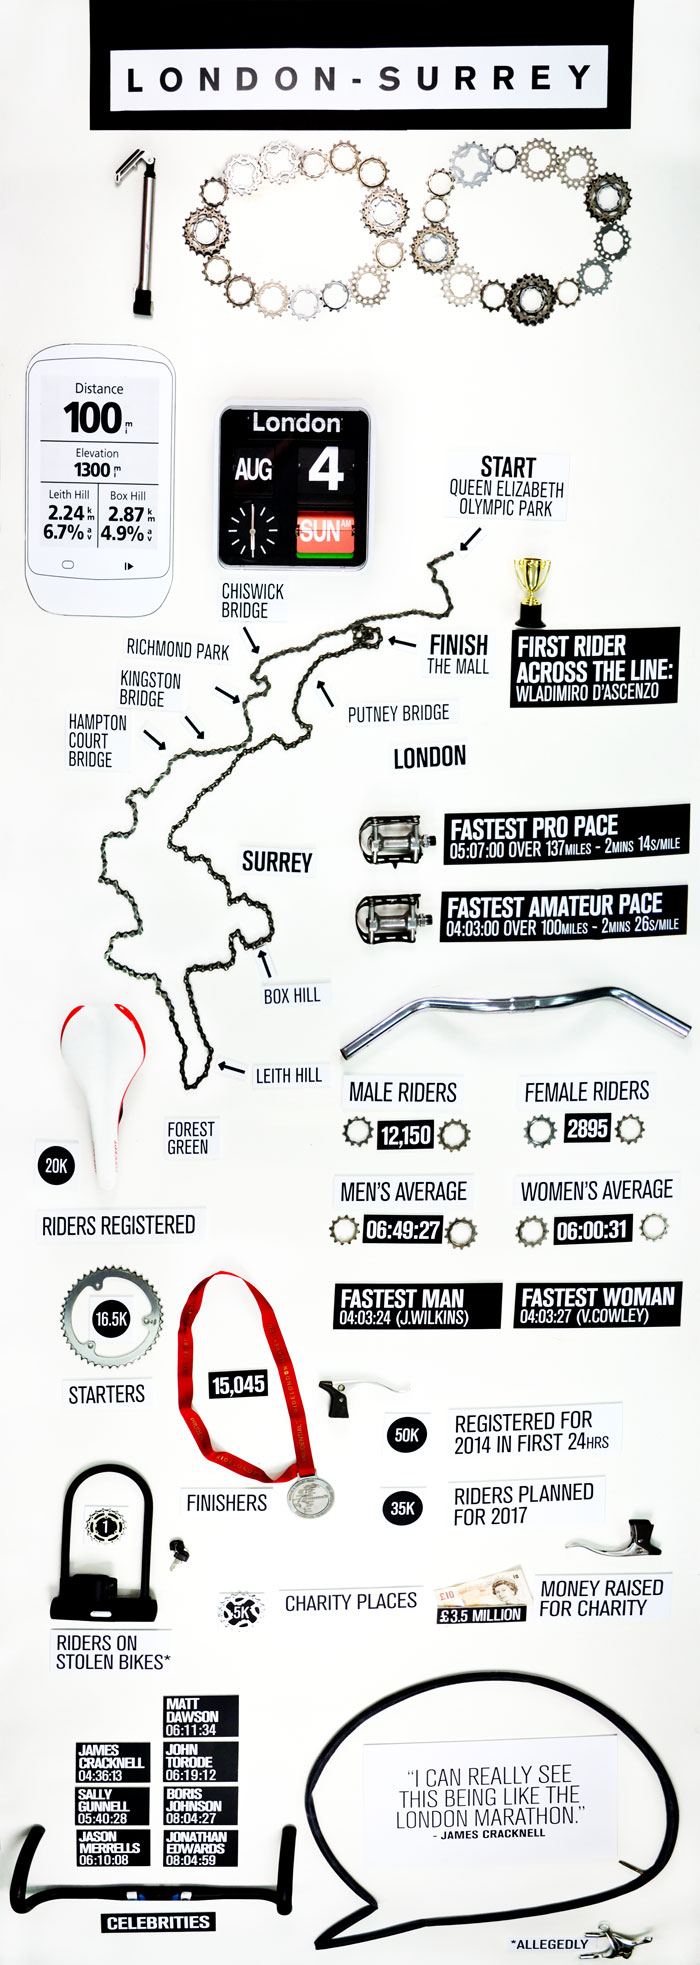 RIDE-LONDON-INFOGRAPHIC-WEB sml (1)